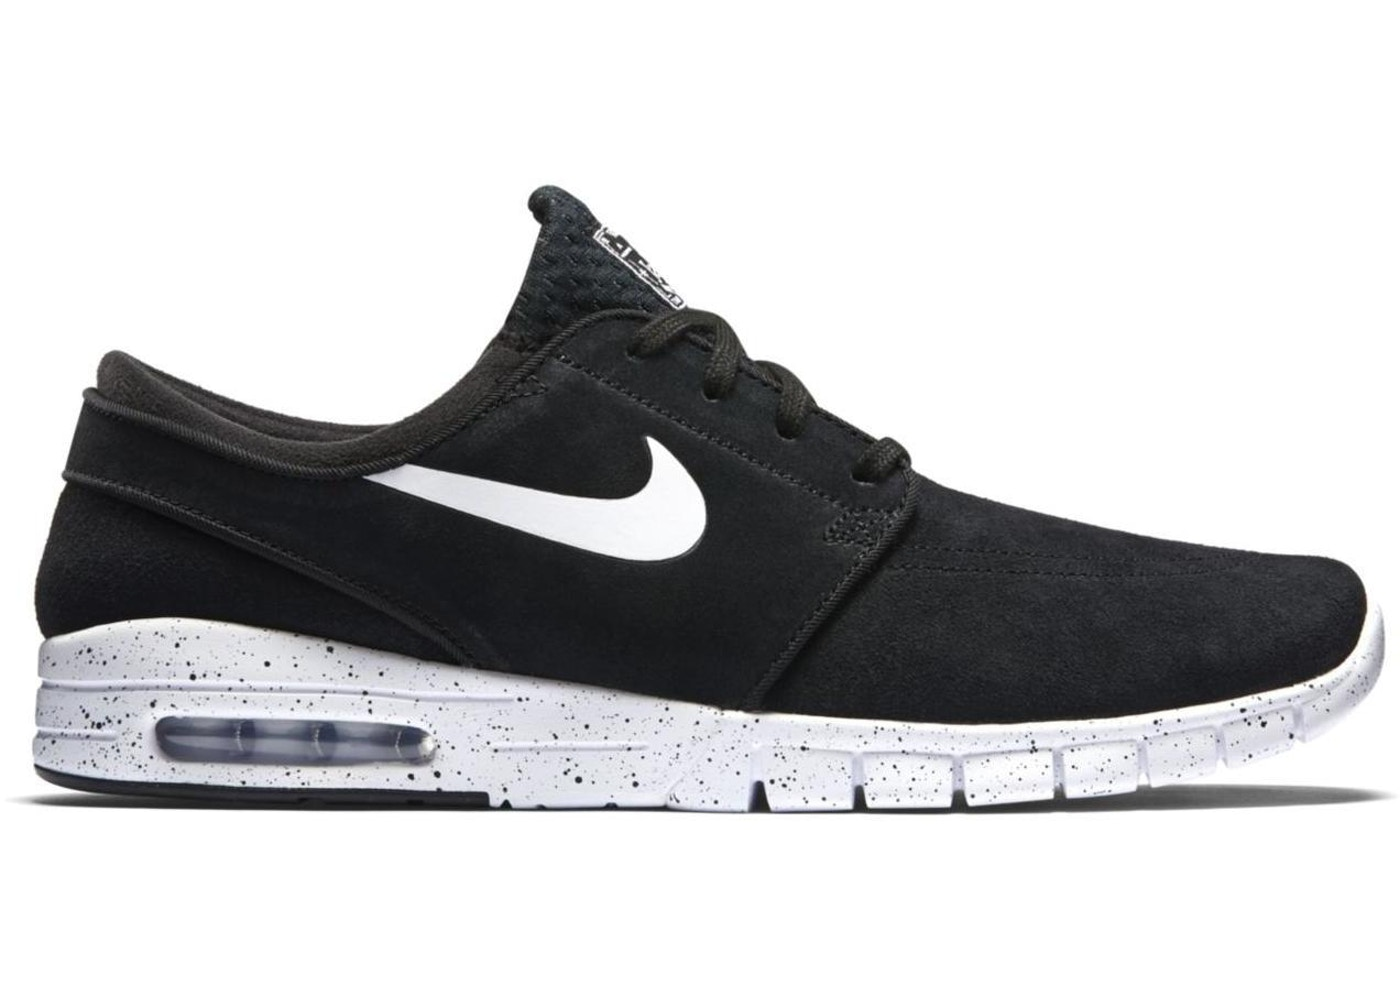 Nike SB Stefan Janoski Max Leather Black White - 685299-002 0afb7c2fb9c5a